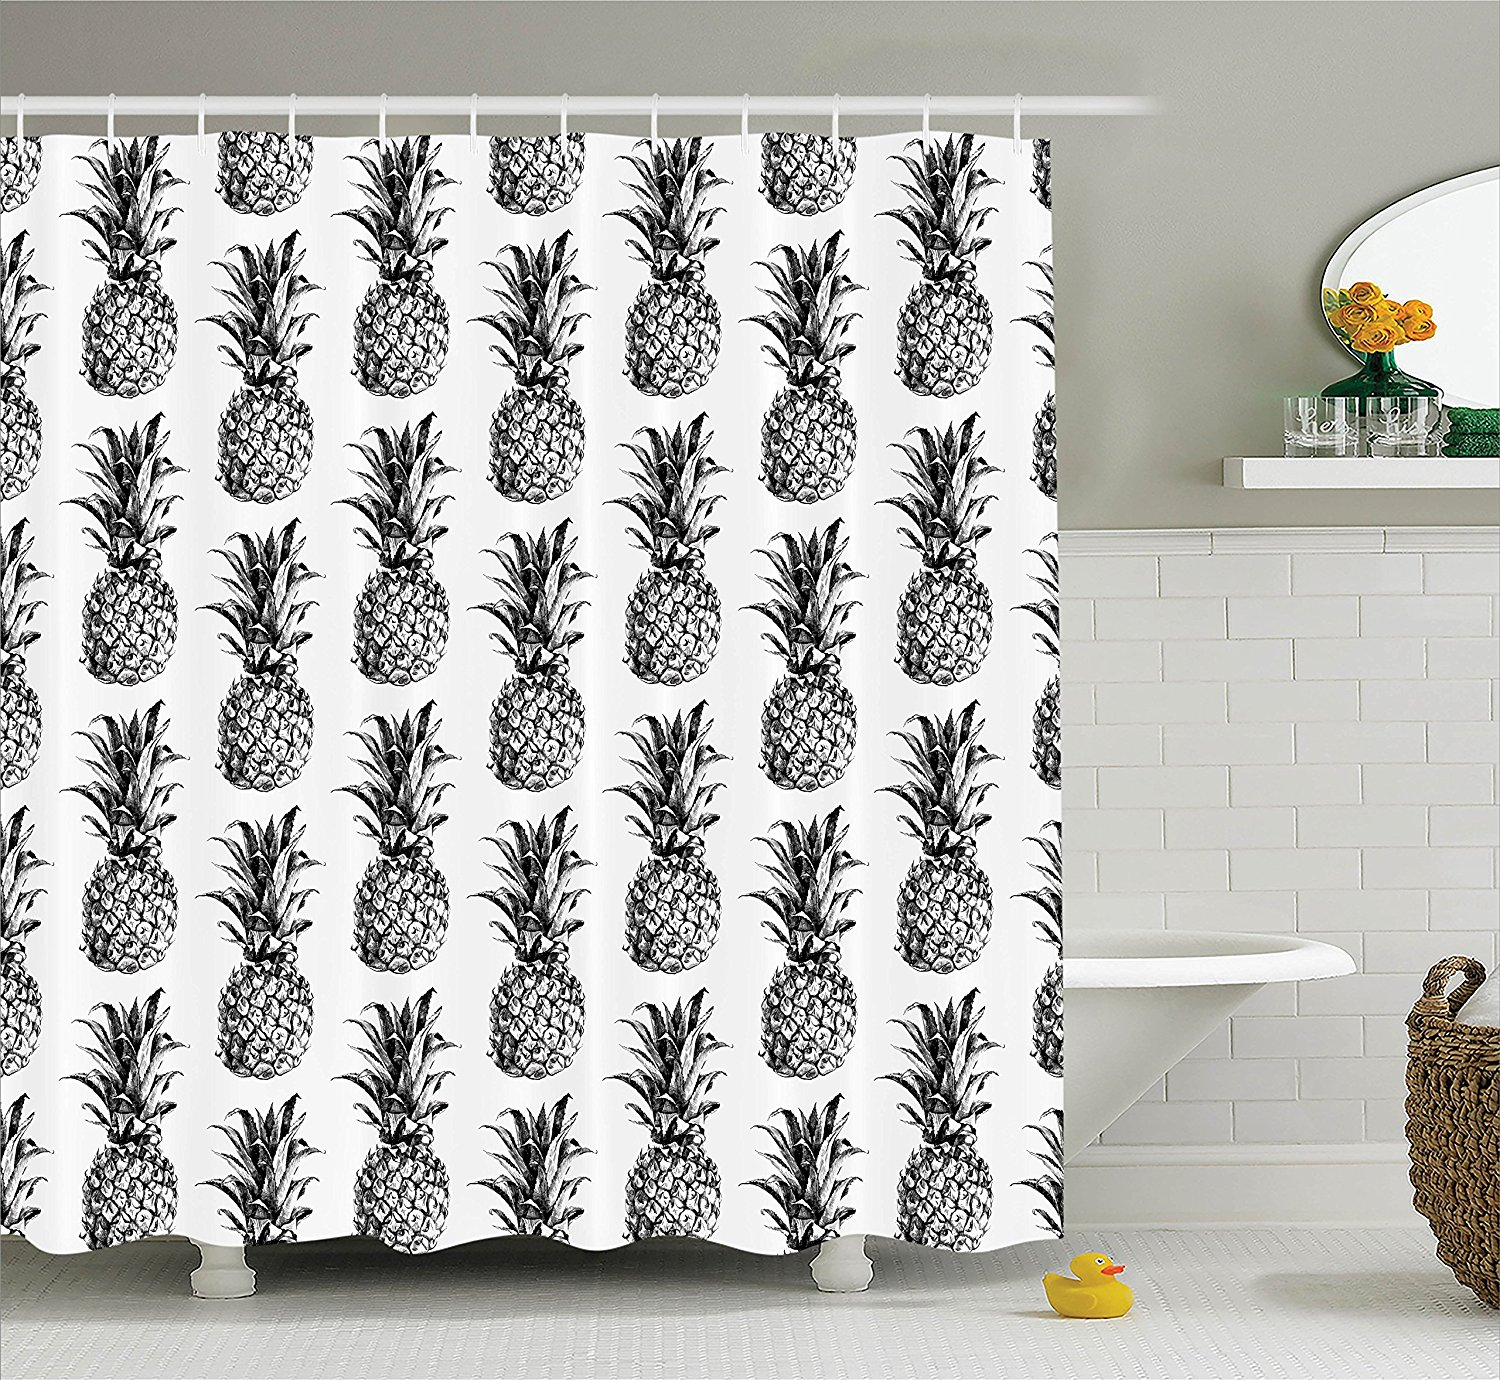 Pineapple Decor Shower Curtain Set By , Artistic Hand